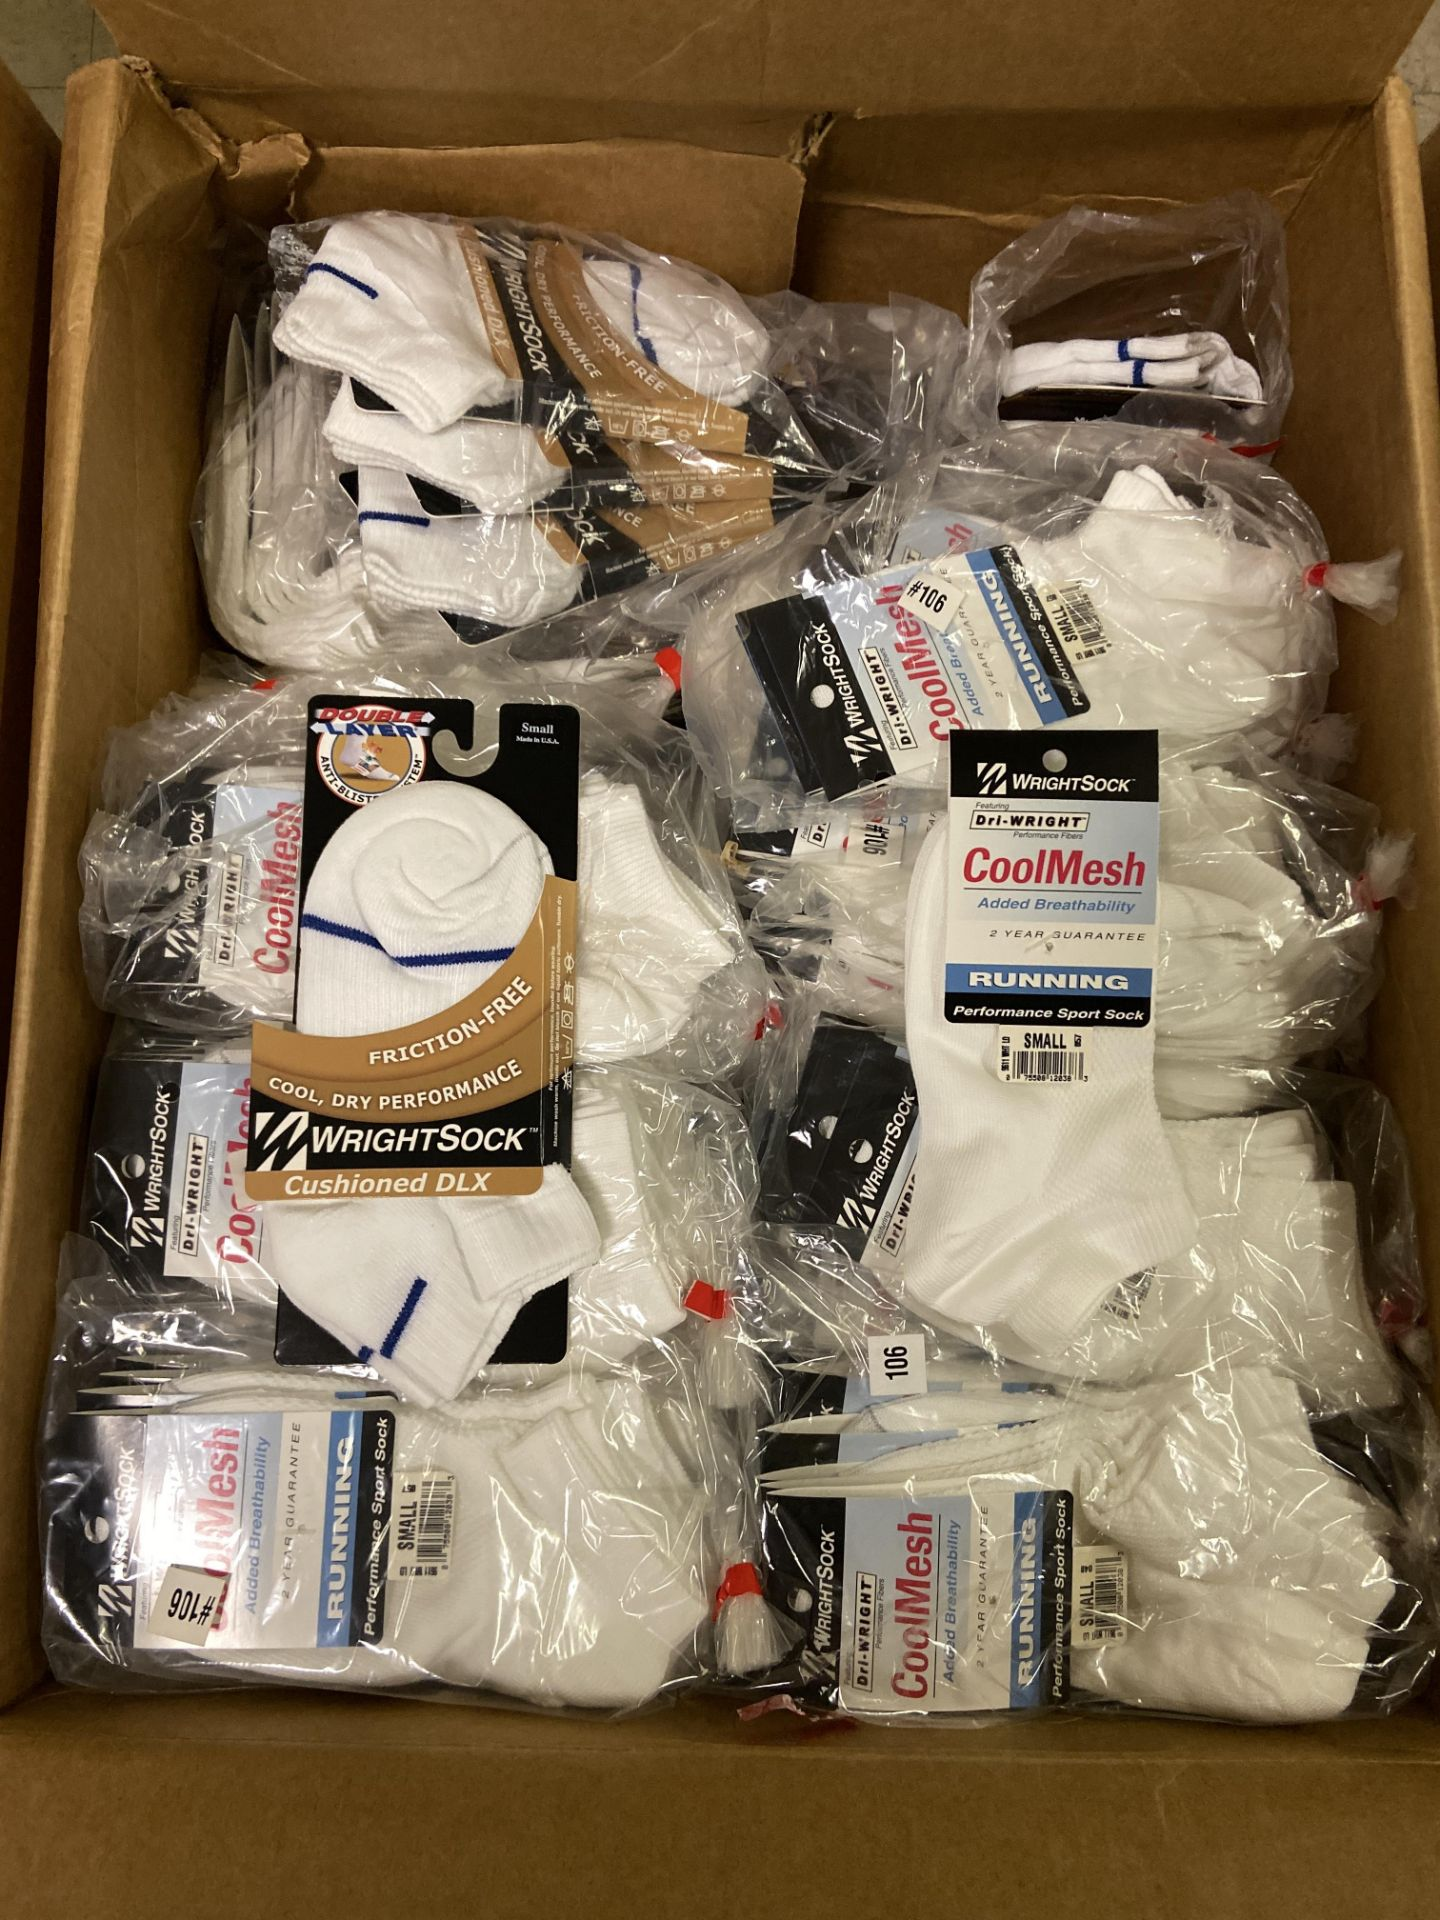 500+ packs of New Socks, Wrightsock Various Styles, Double Layer, Various Colors White/Black/Etc - Image 5 of 7